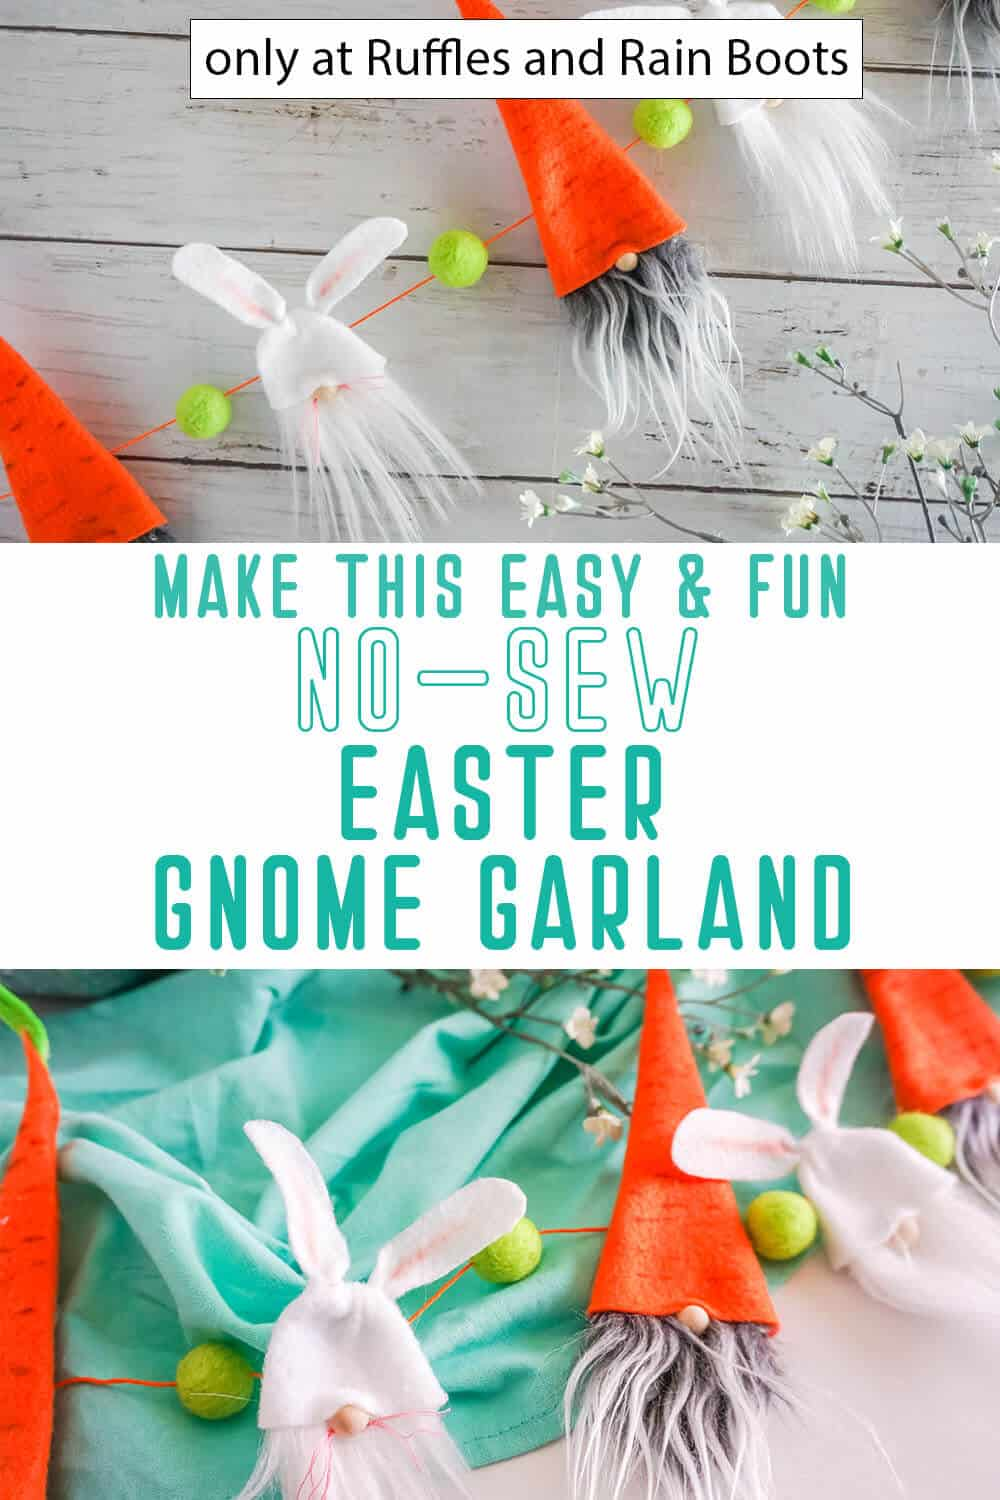 photo collage of diy easter gnome pattern garland with text which reads make this easy & fun no-sew easter gnome garland